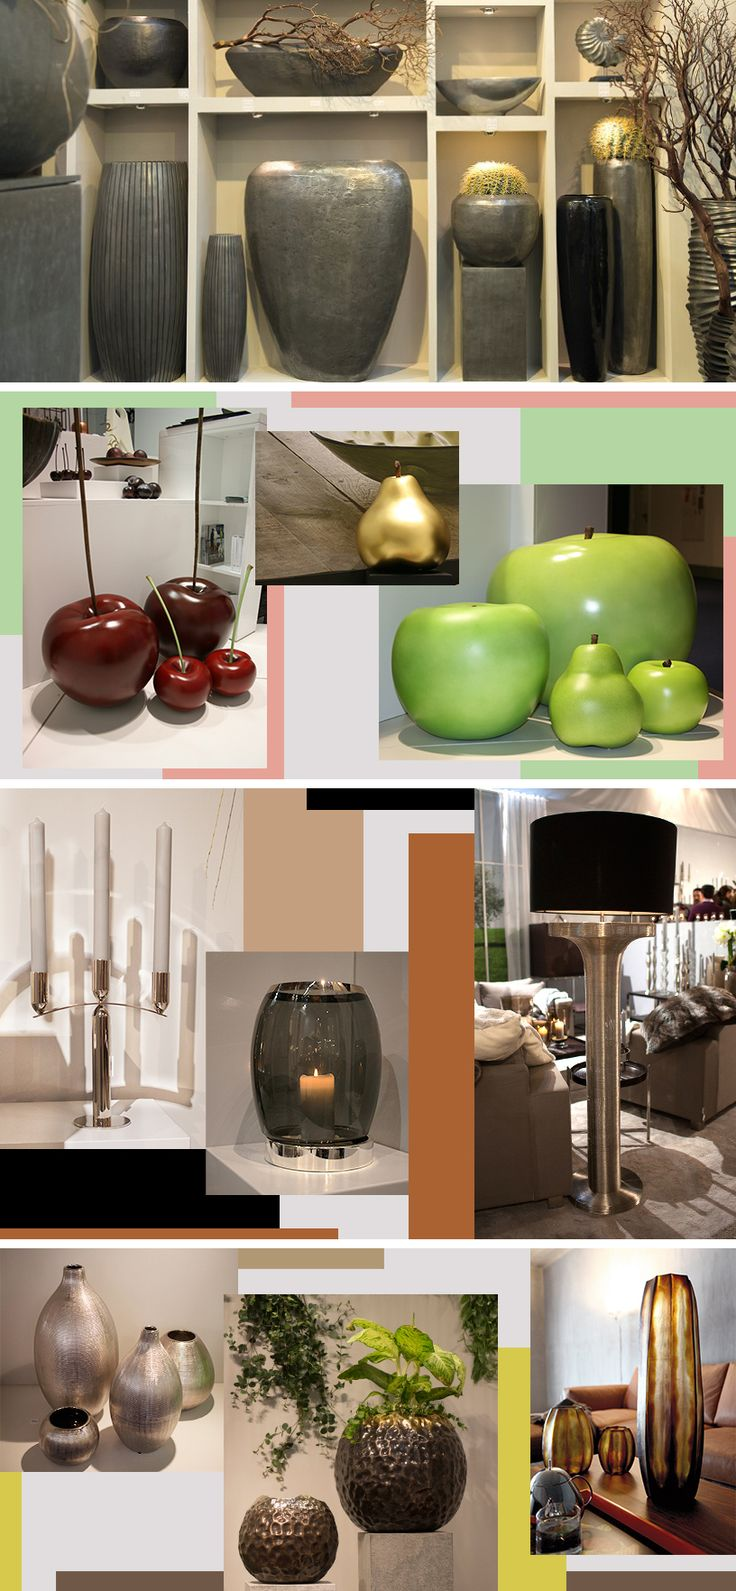 Big accessories give a big impact. At Ambiente, XXL key pieces such as oversized candlesticks, vases and other decorative details give great pleasure and illustrate the skill in staging your rooms just so. This #trend is huge!